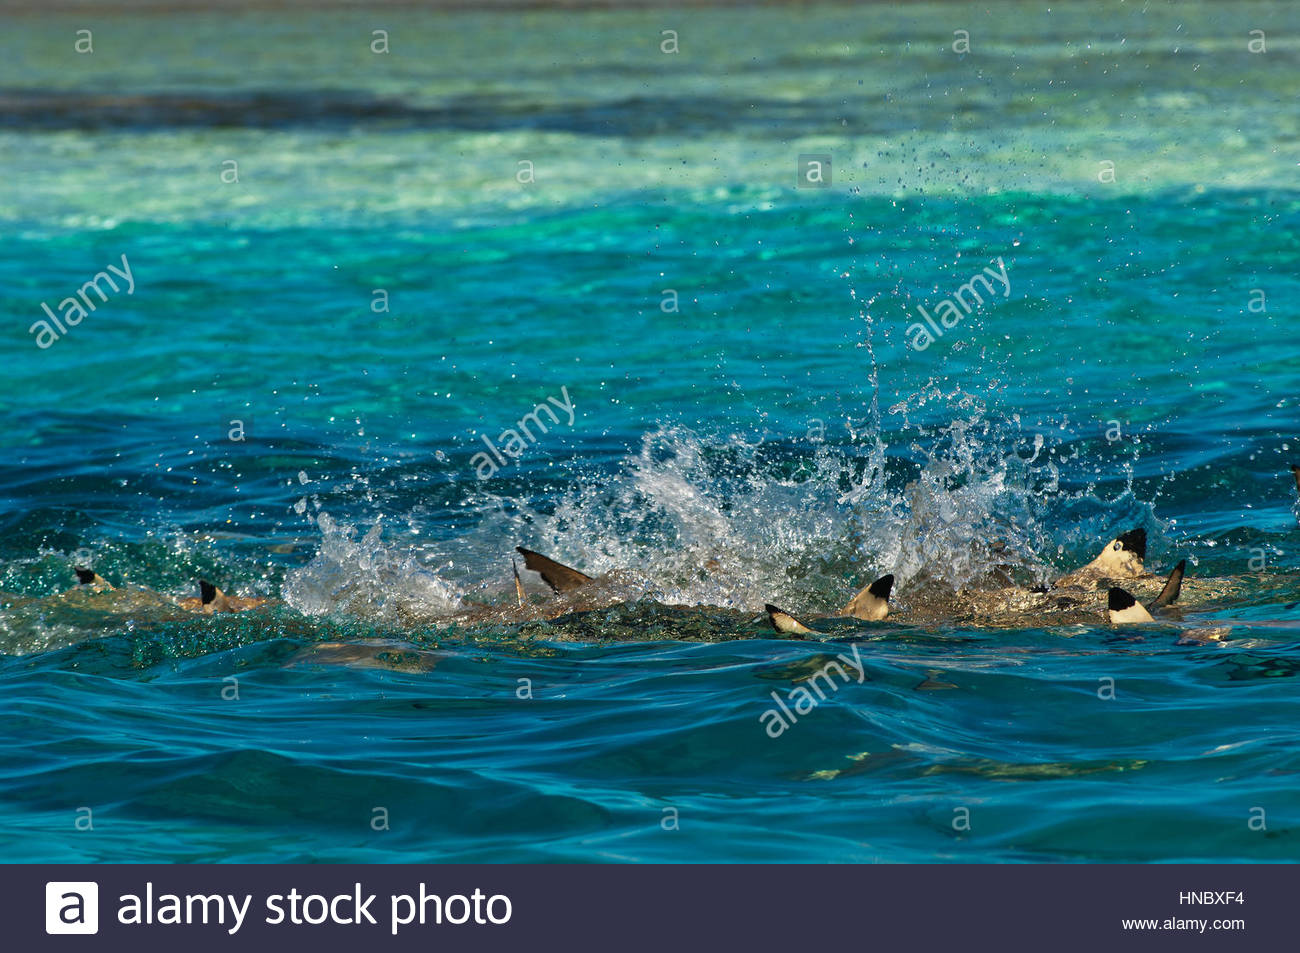 Blacktip reef sharks search for food in shallow lagoon waters off Millennium Atoll. - Stock Image